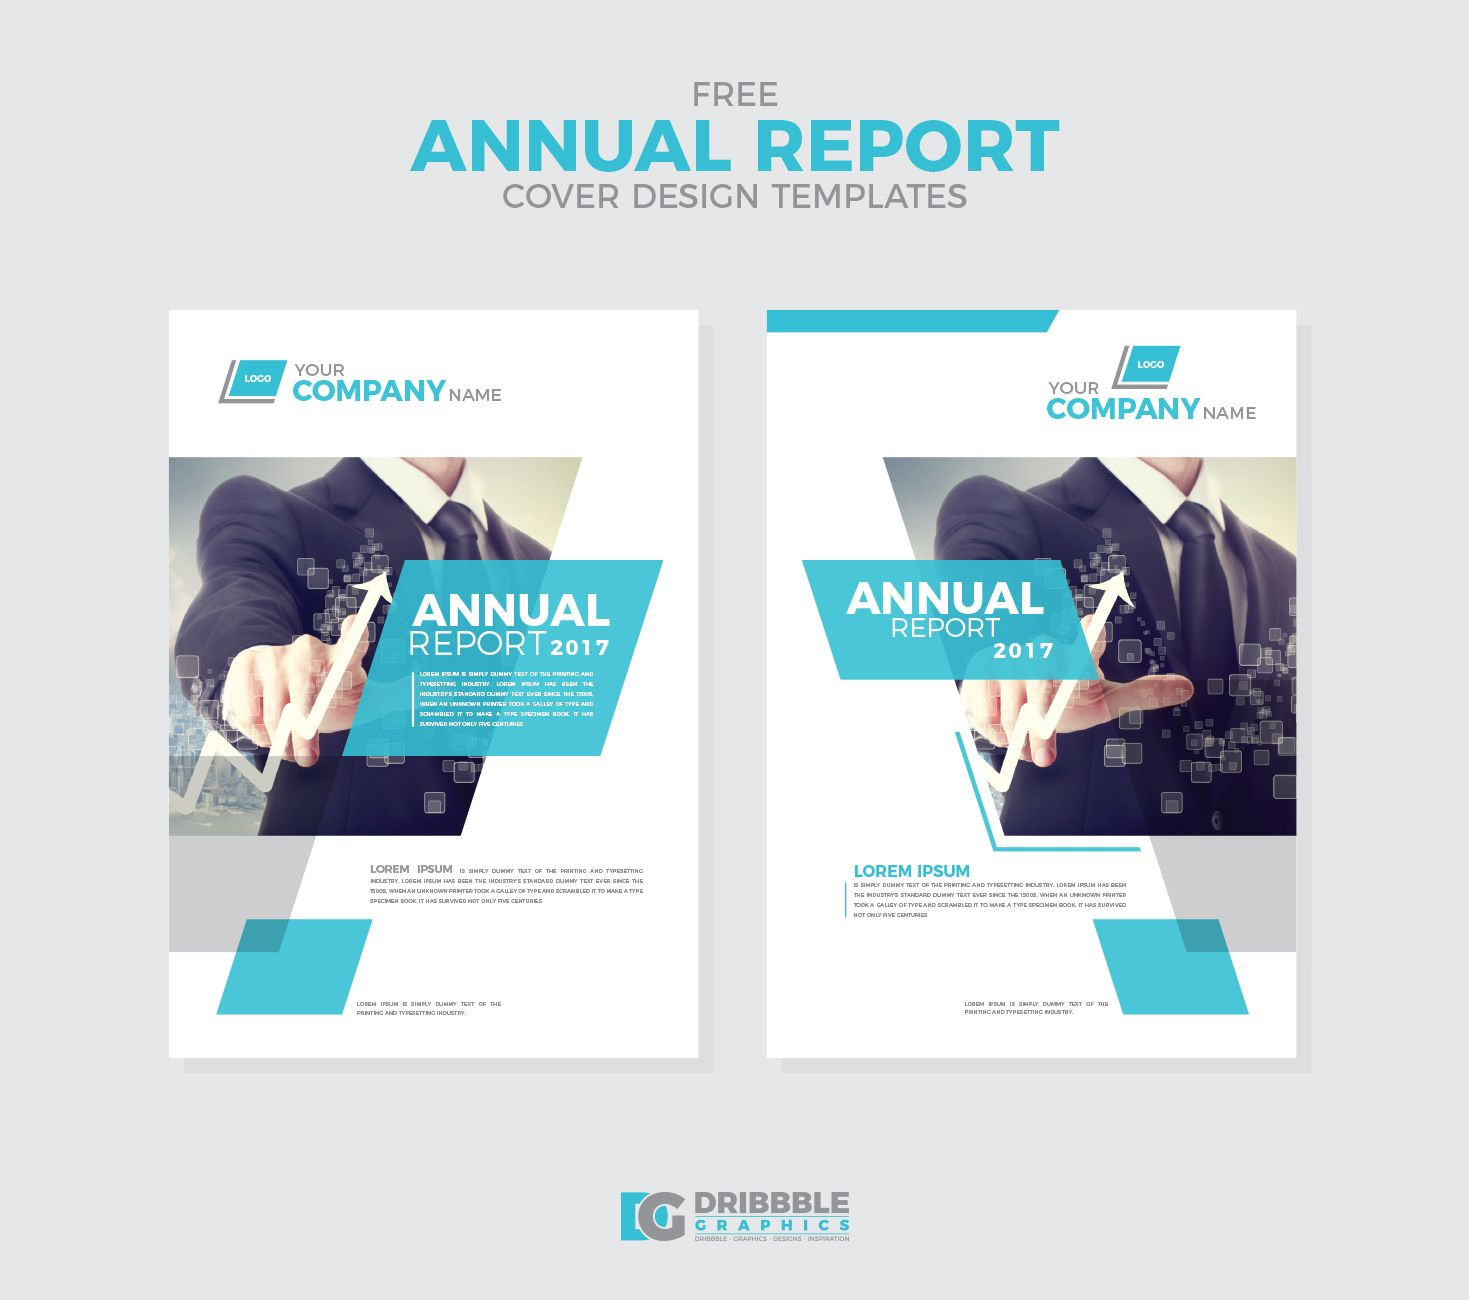 free annual report cover design templates design inspirations